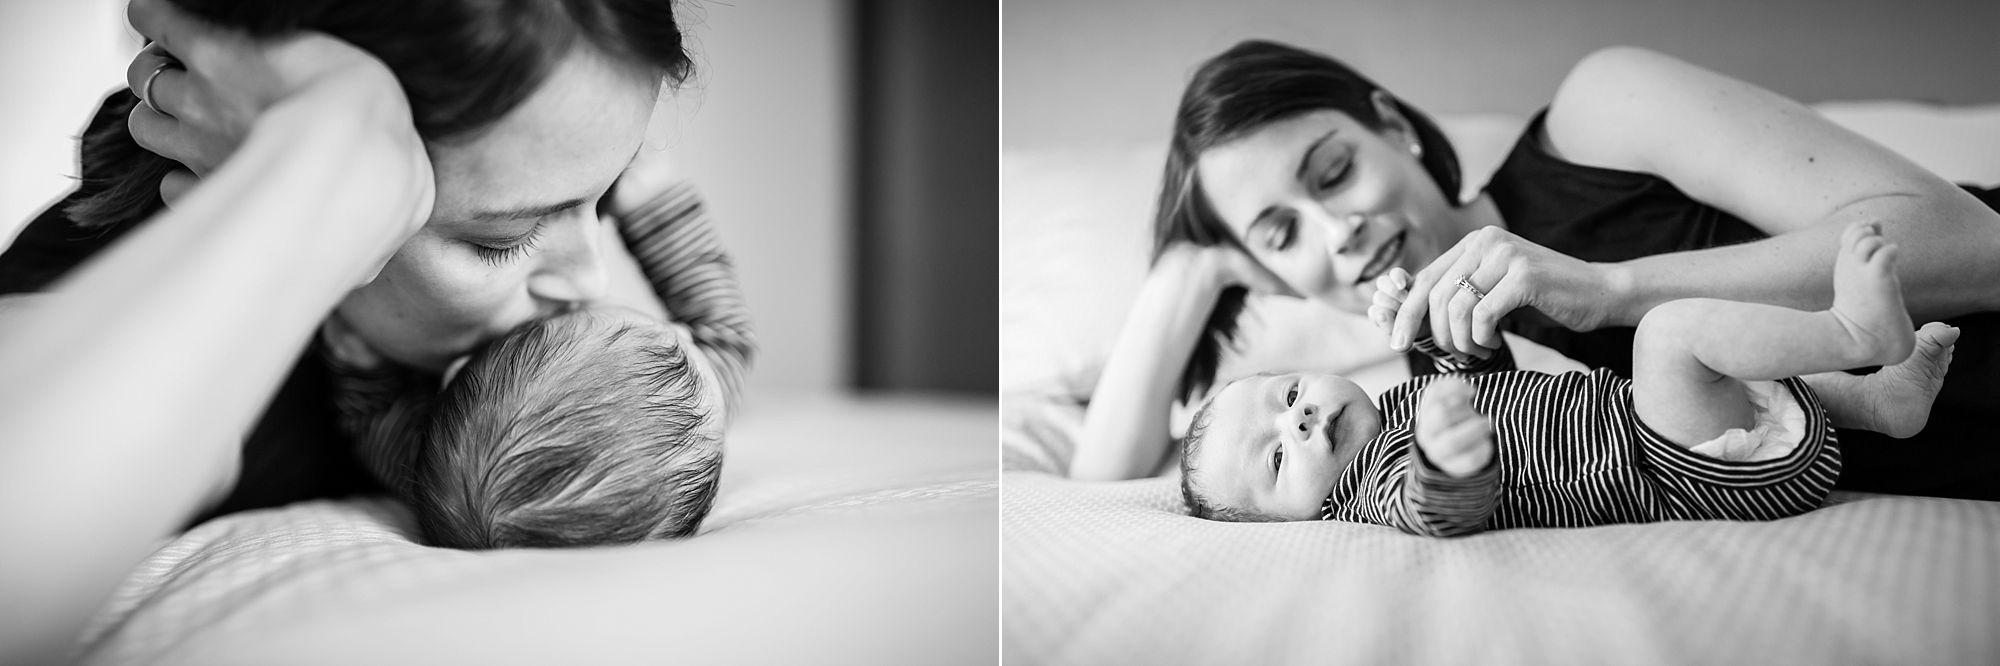 Taiwan_in_home_lifestyle_newborn_photography_hunnicutt_photography_0013